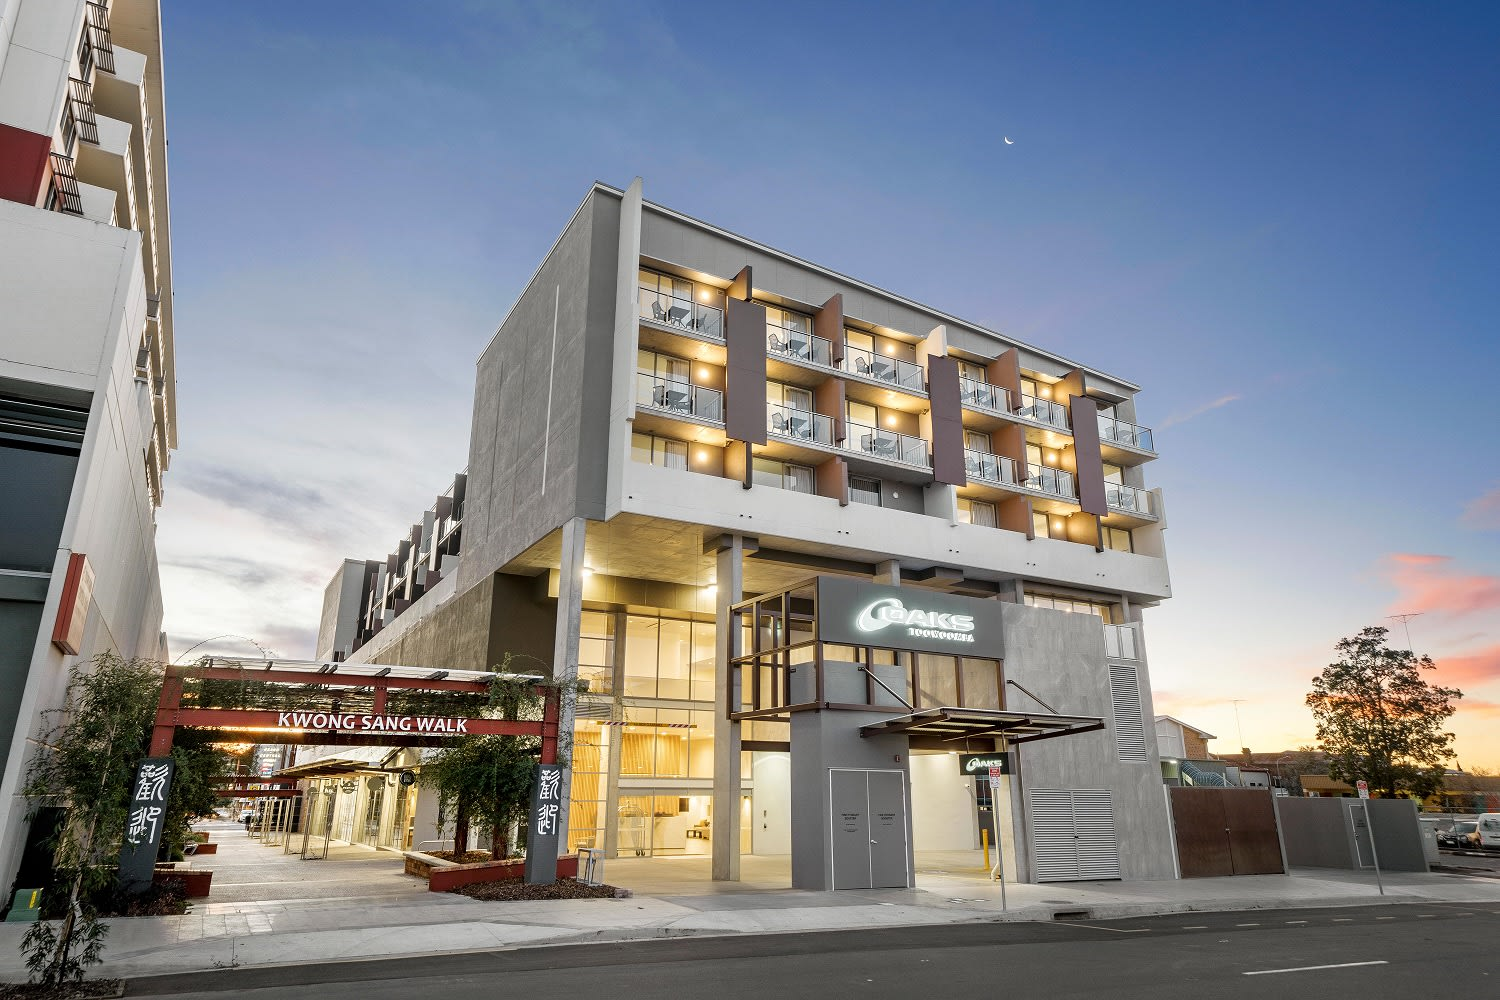 Oaks Toowoomba Hotel launches in Queensland's Largest Inland City